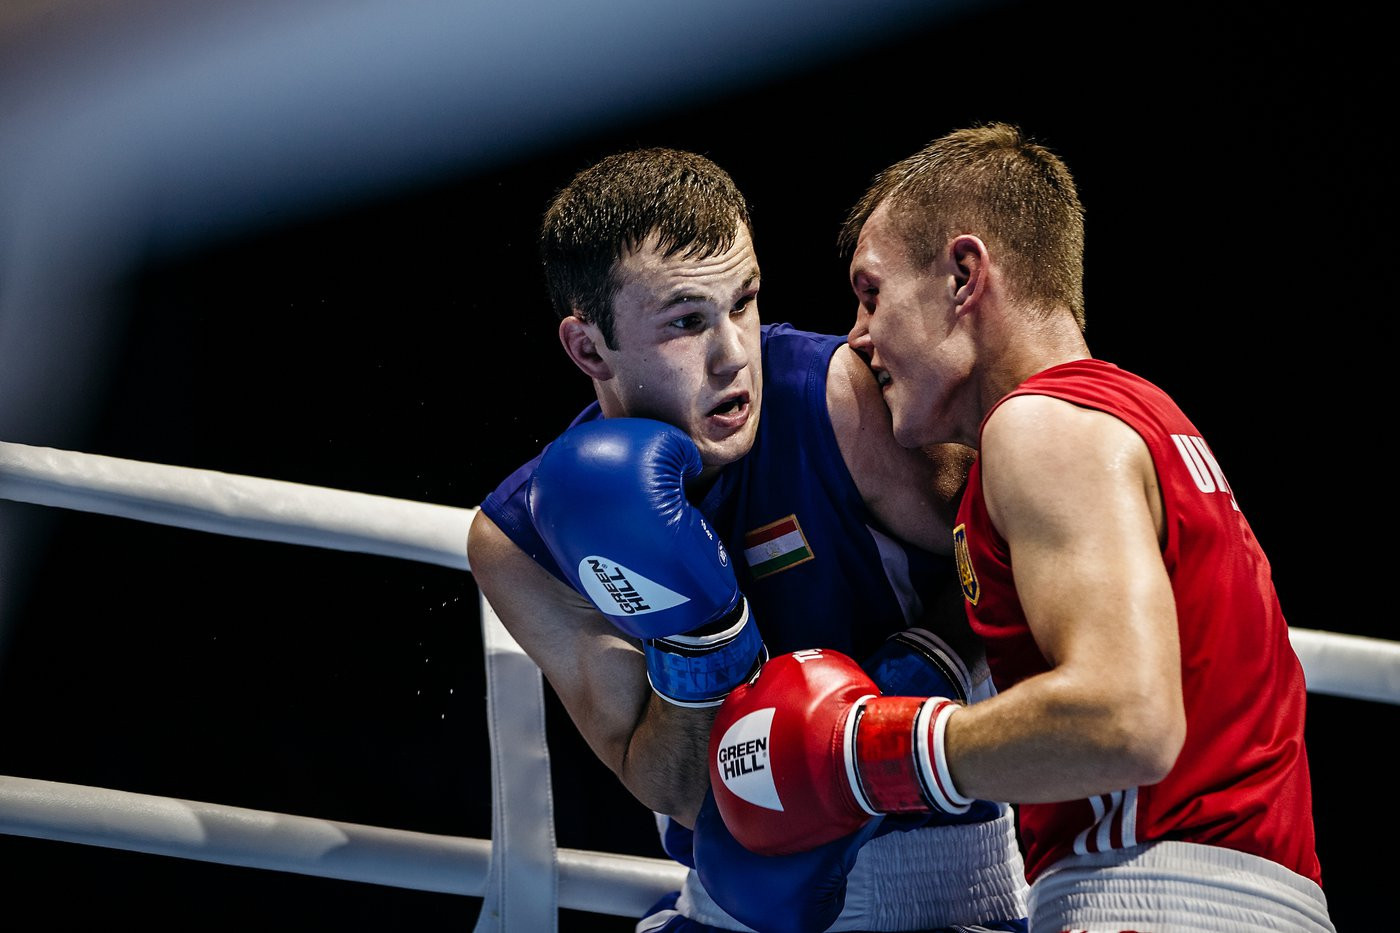 Asian champion Usmonov triumphs in first bout of AIBA World Championships